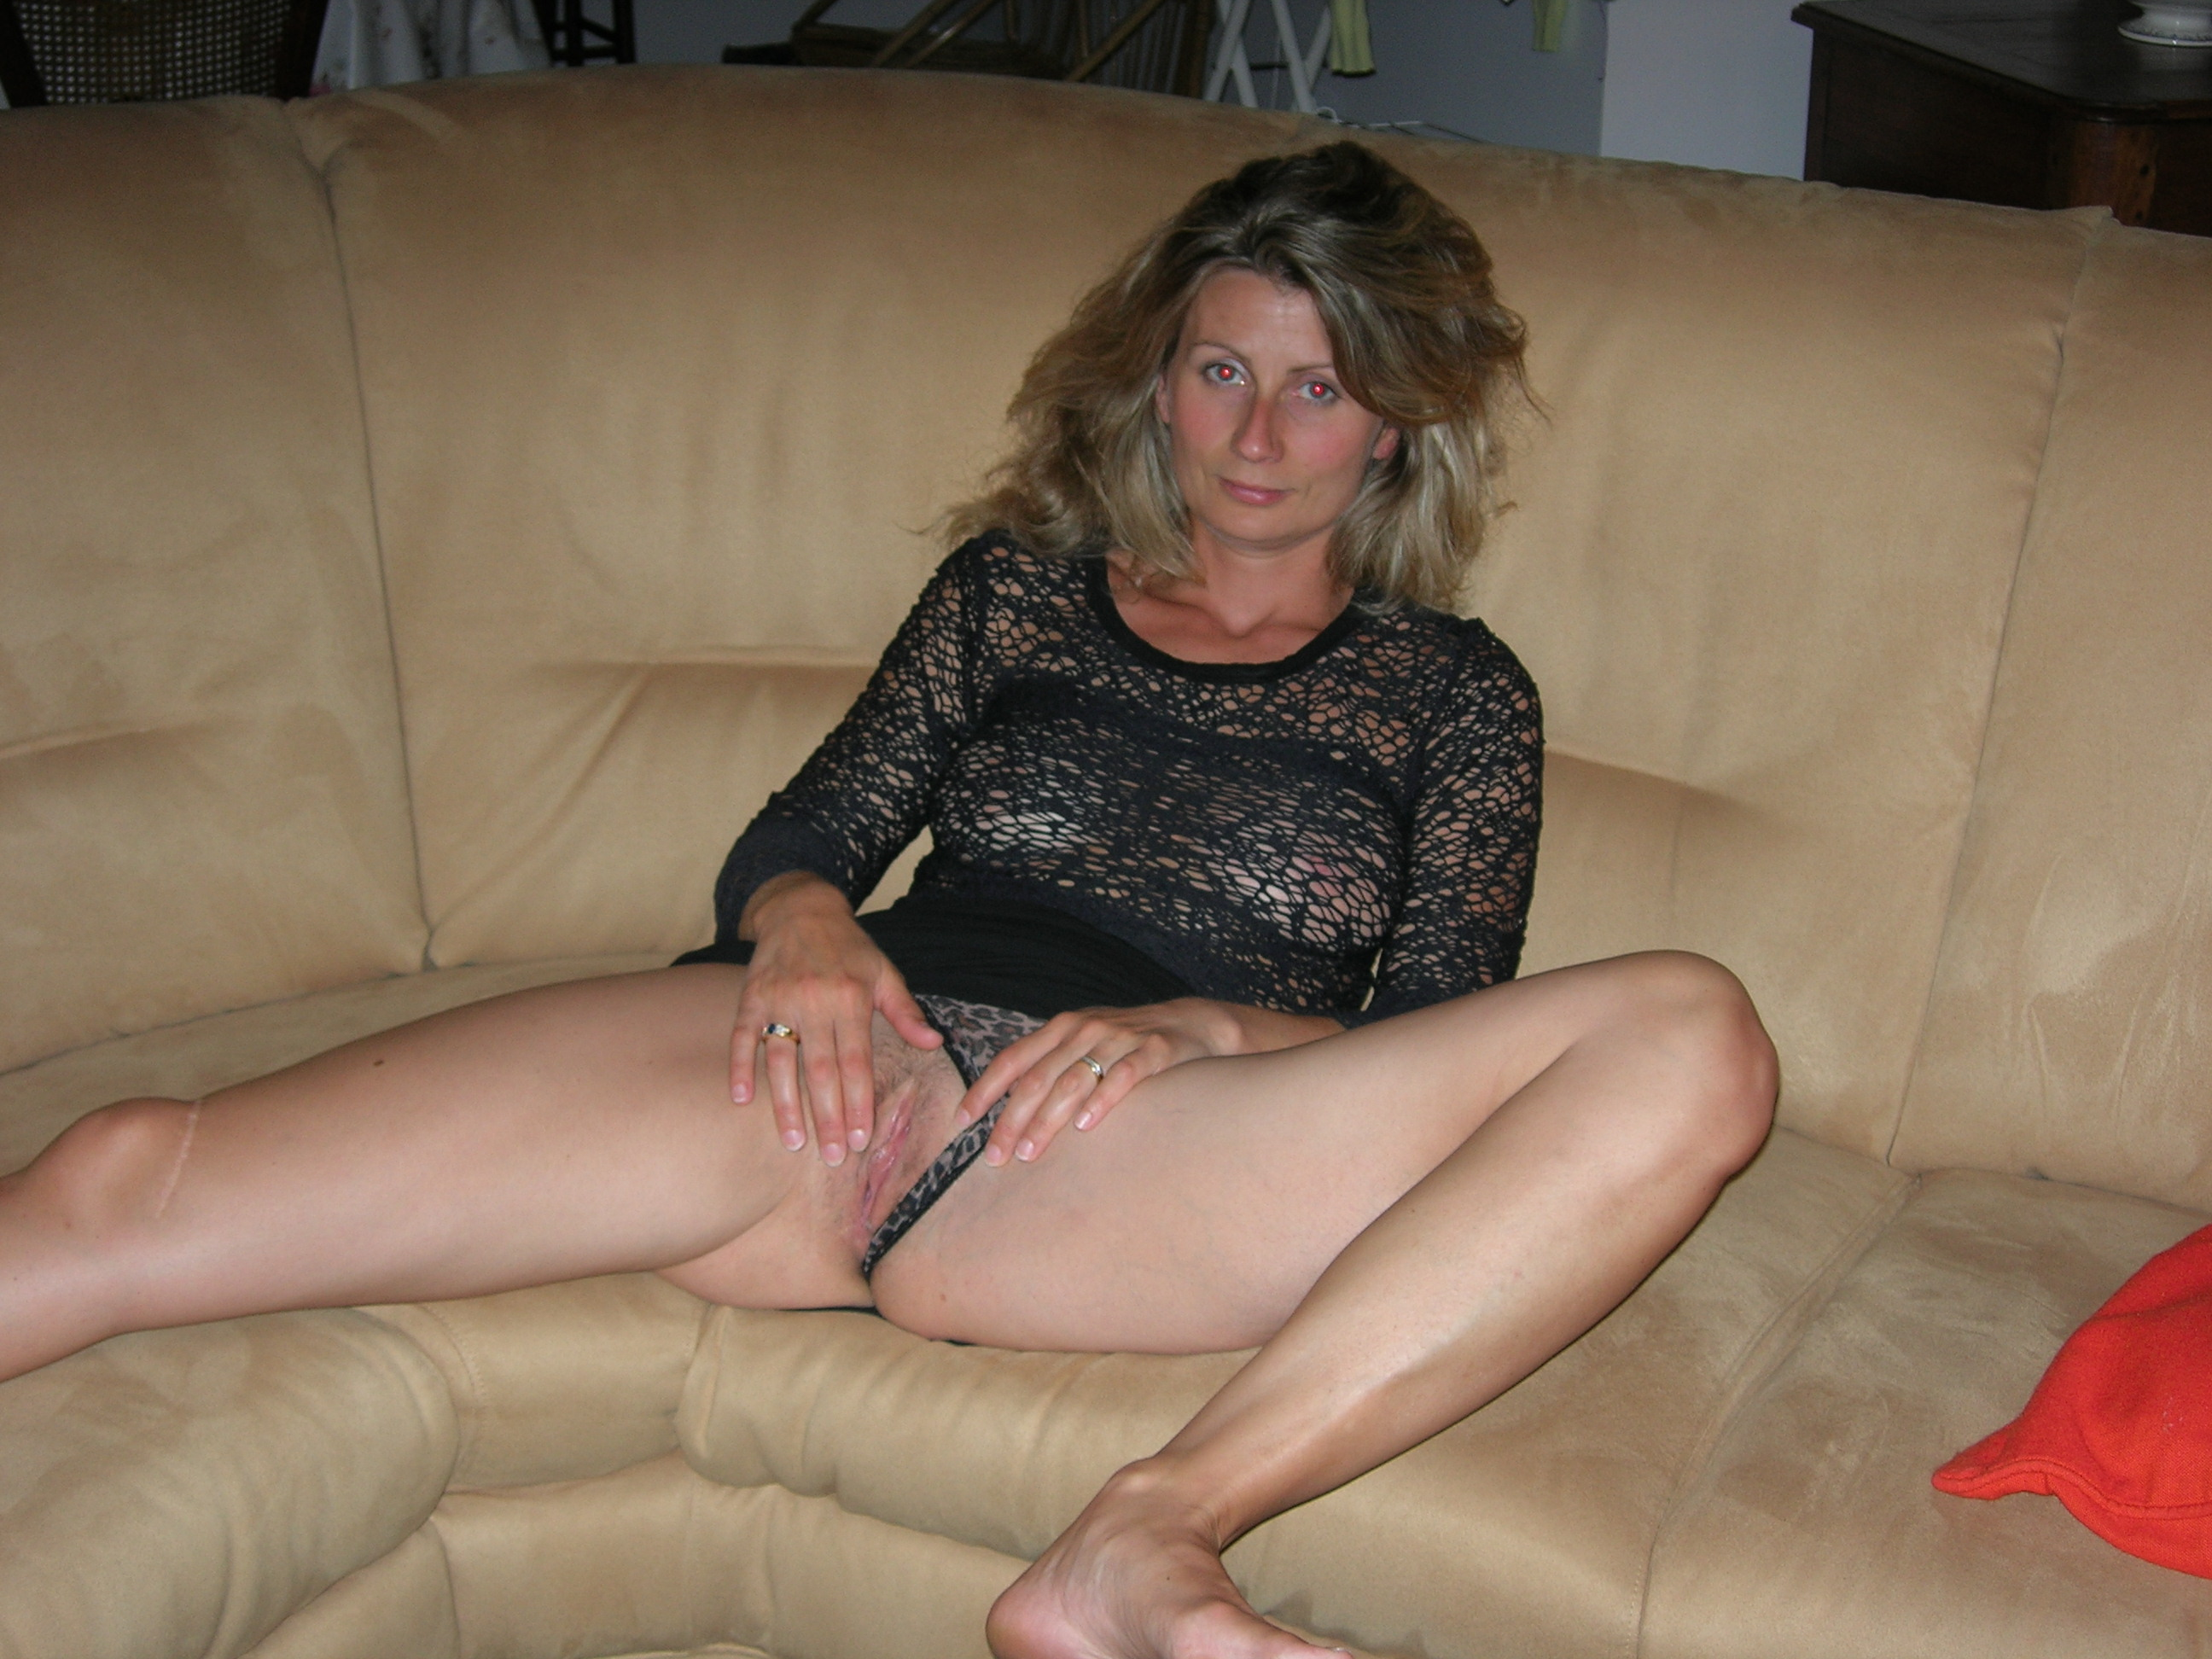 naughty amateur mom with slim body shows you her tits and shaved